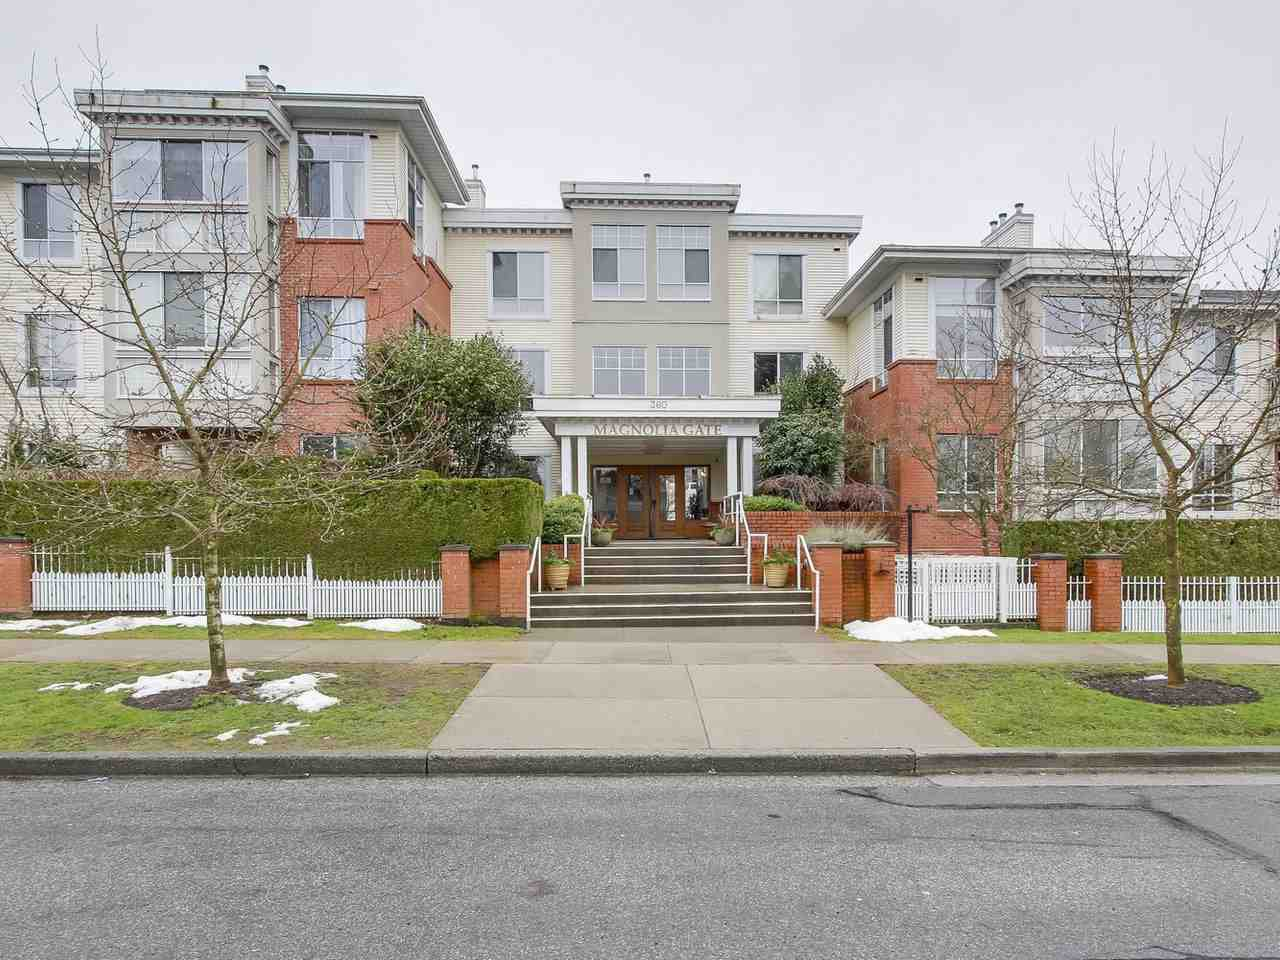 "Main Photo: 405 360 E 36TH Avenue in Vancouver: Main Condo for sale in ""MAGNOLIA GATE"" (Vancouver East)  : MLS®# R2244662"